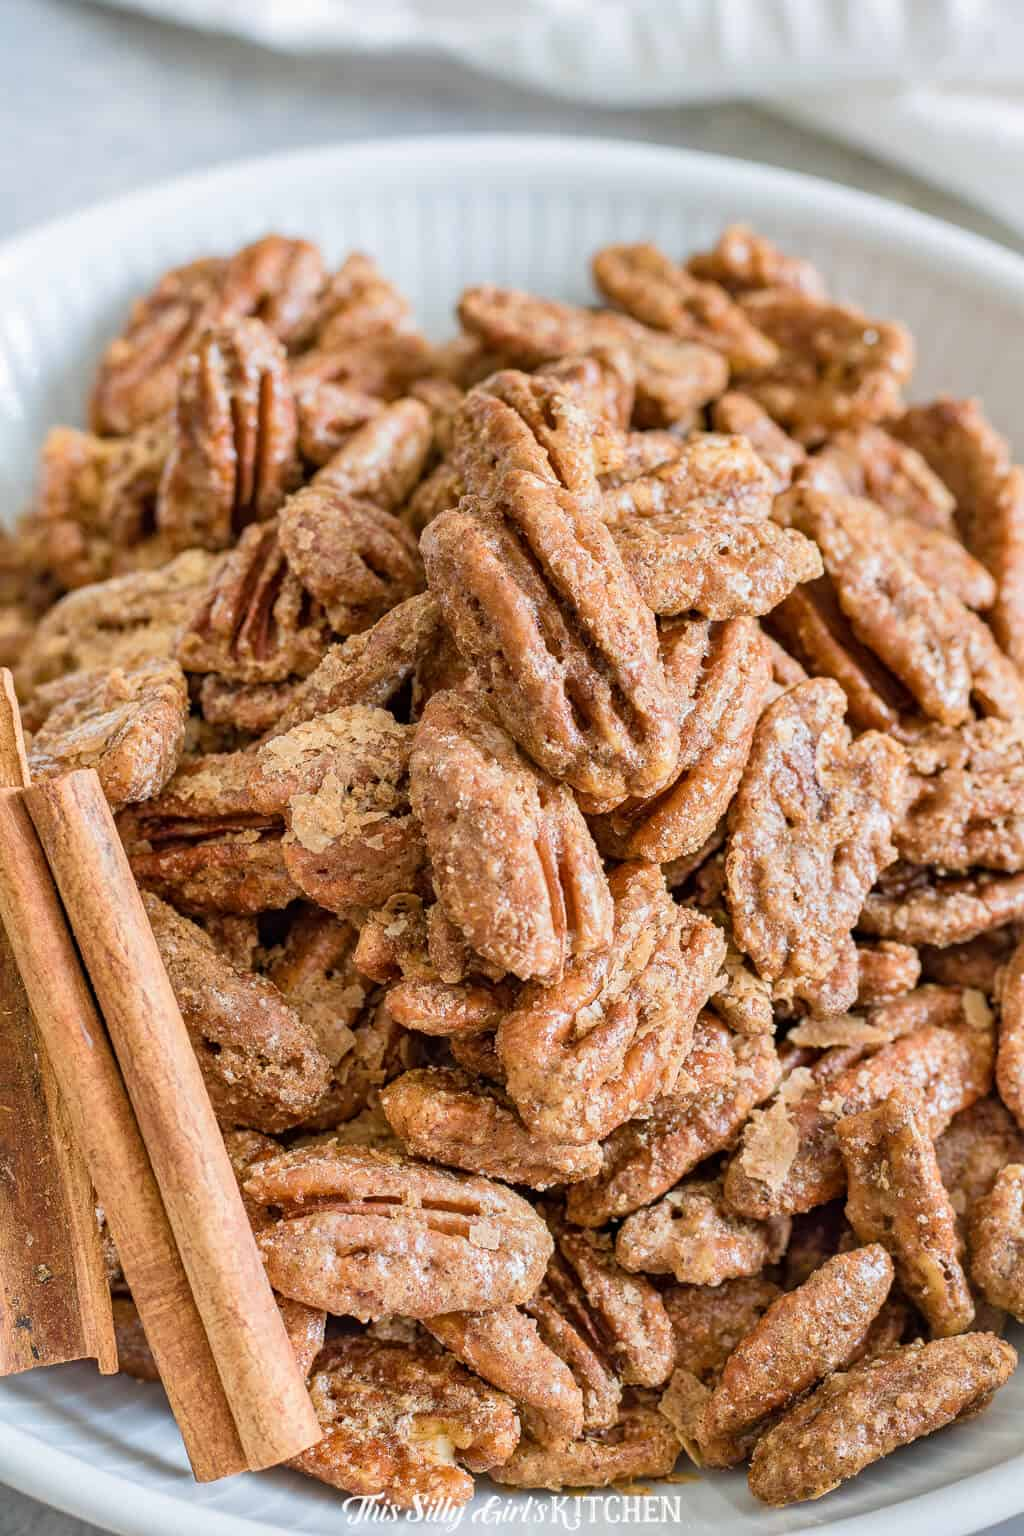 Cinnamon Sugar Roasted Pecans, sweet, crunchy, extremely easy and totally addicting! #Recipe from ThisSillyGirlsKitchen.com #pecans #candiedpecans #roastedpecans #cinnamon